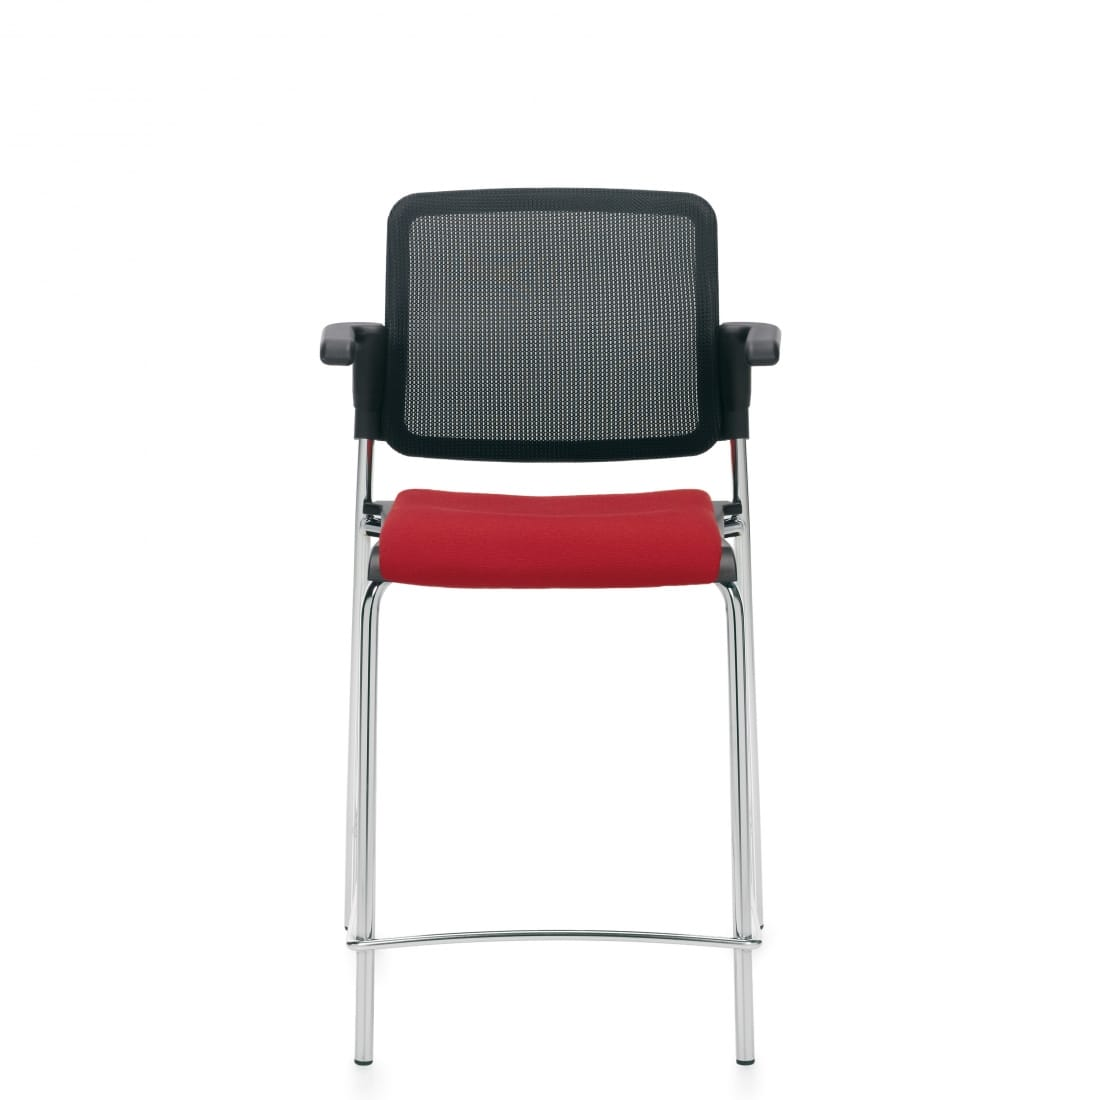 Counter Stool with Arms, Red Upholstered Seat & Black Mesh Back With Chrome Frame (6564CSMB)